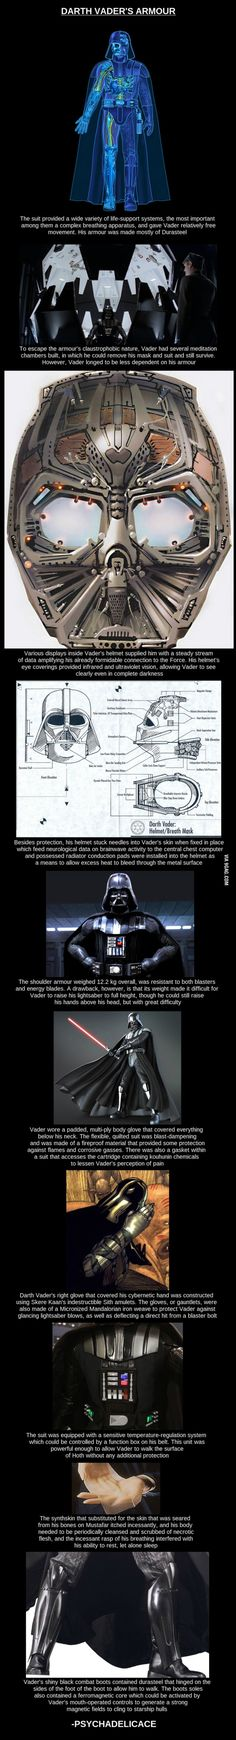 Darth Vaders Armor more funny pics on facebook: https://www.facebook.com/yourfunnypics101